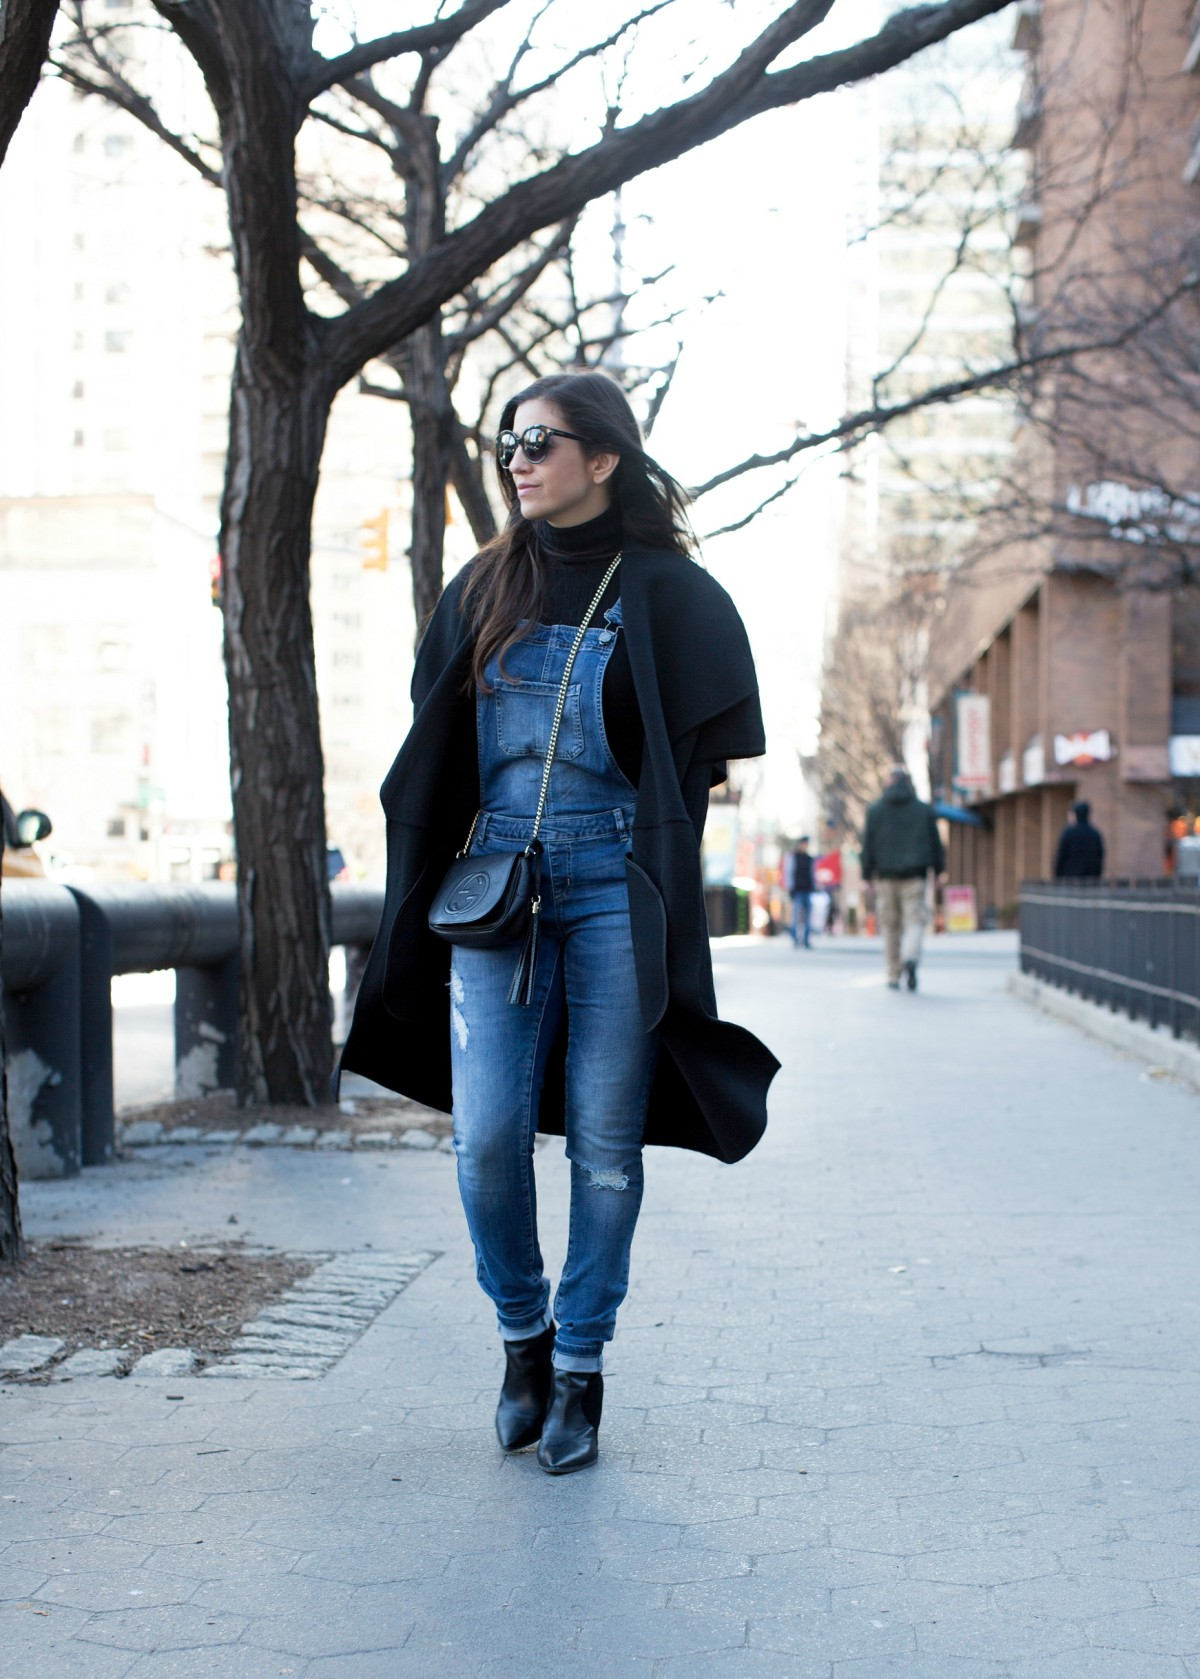 NYC street style, wearing overalls in the winter,